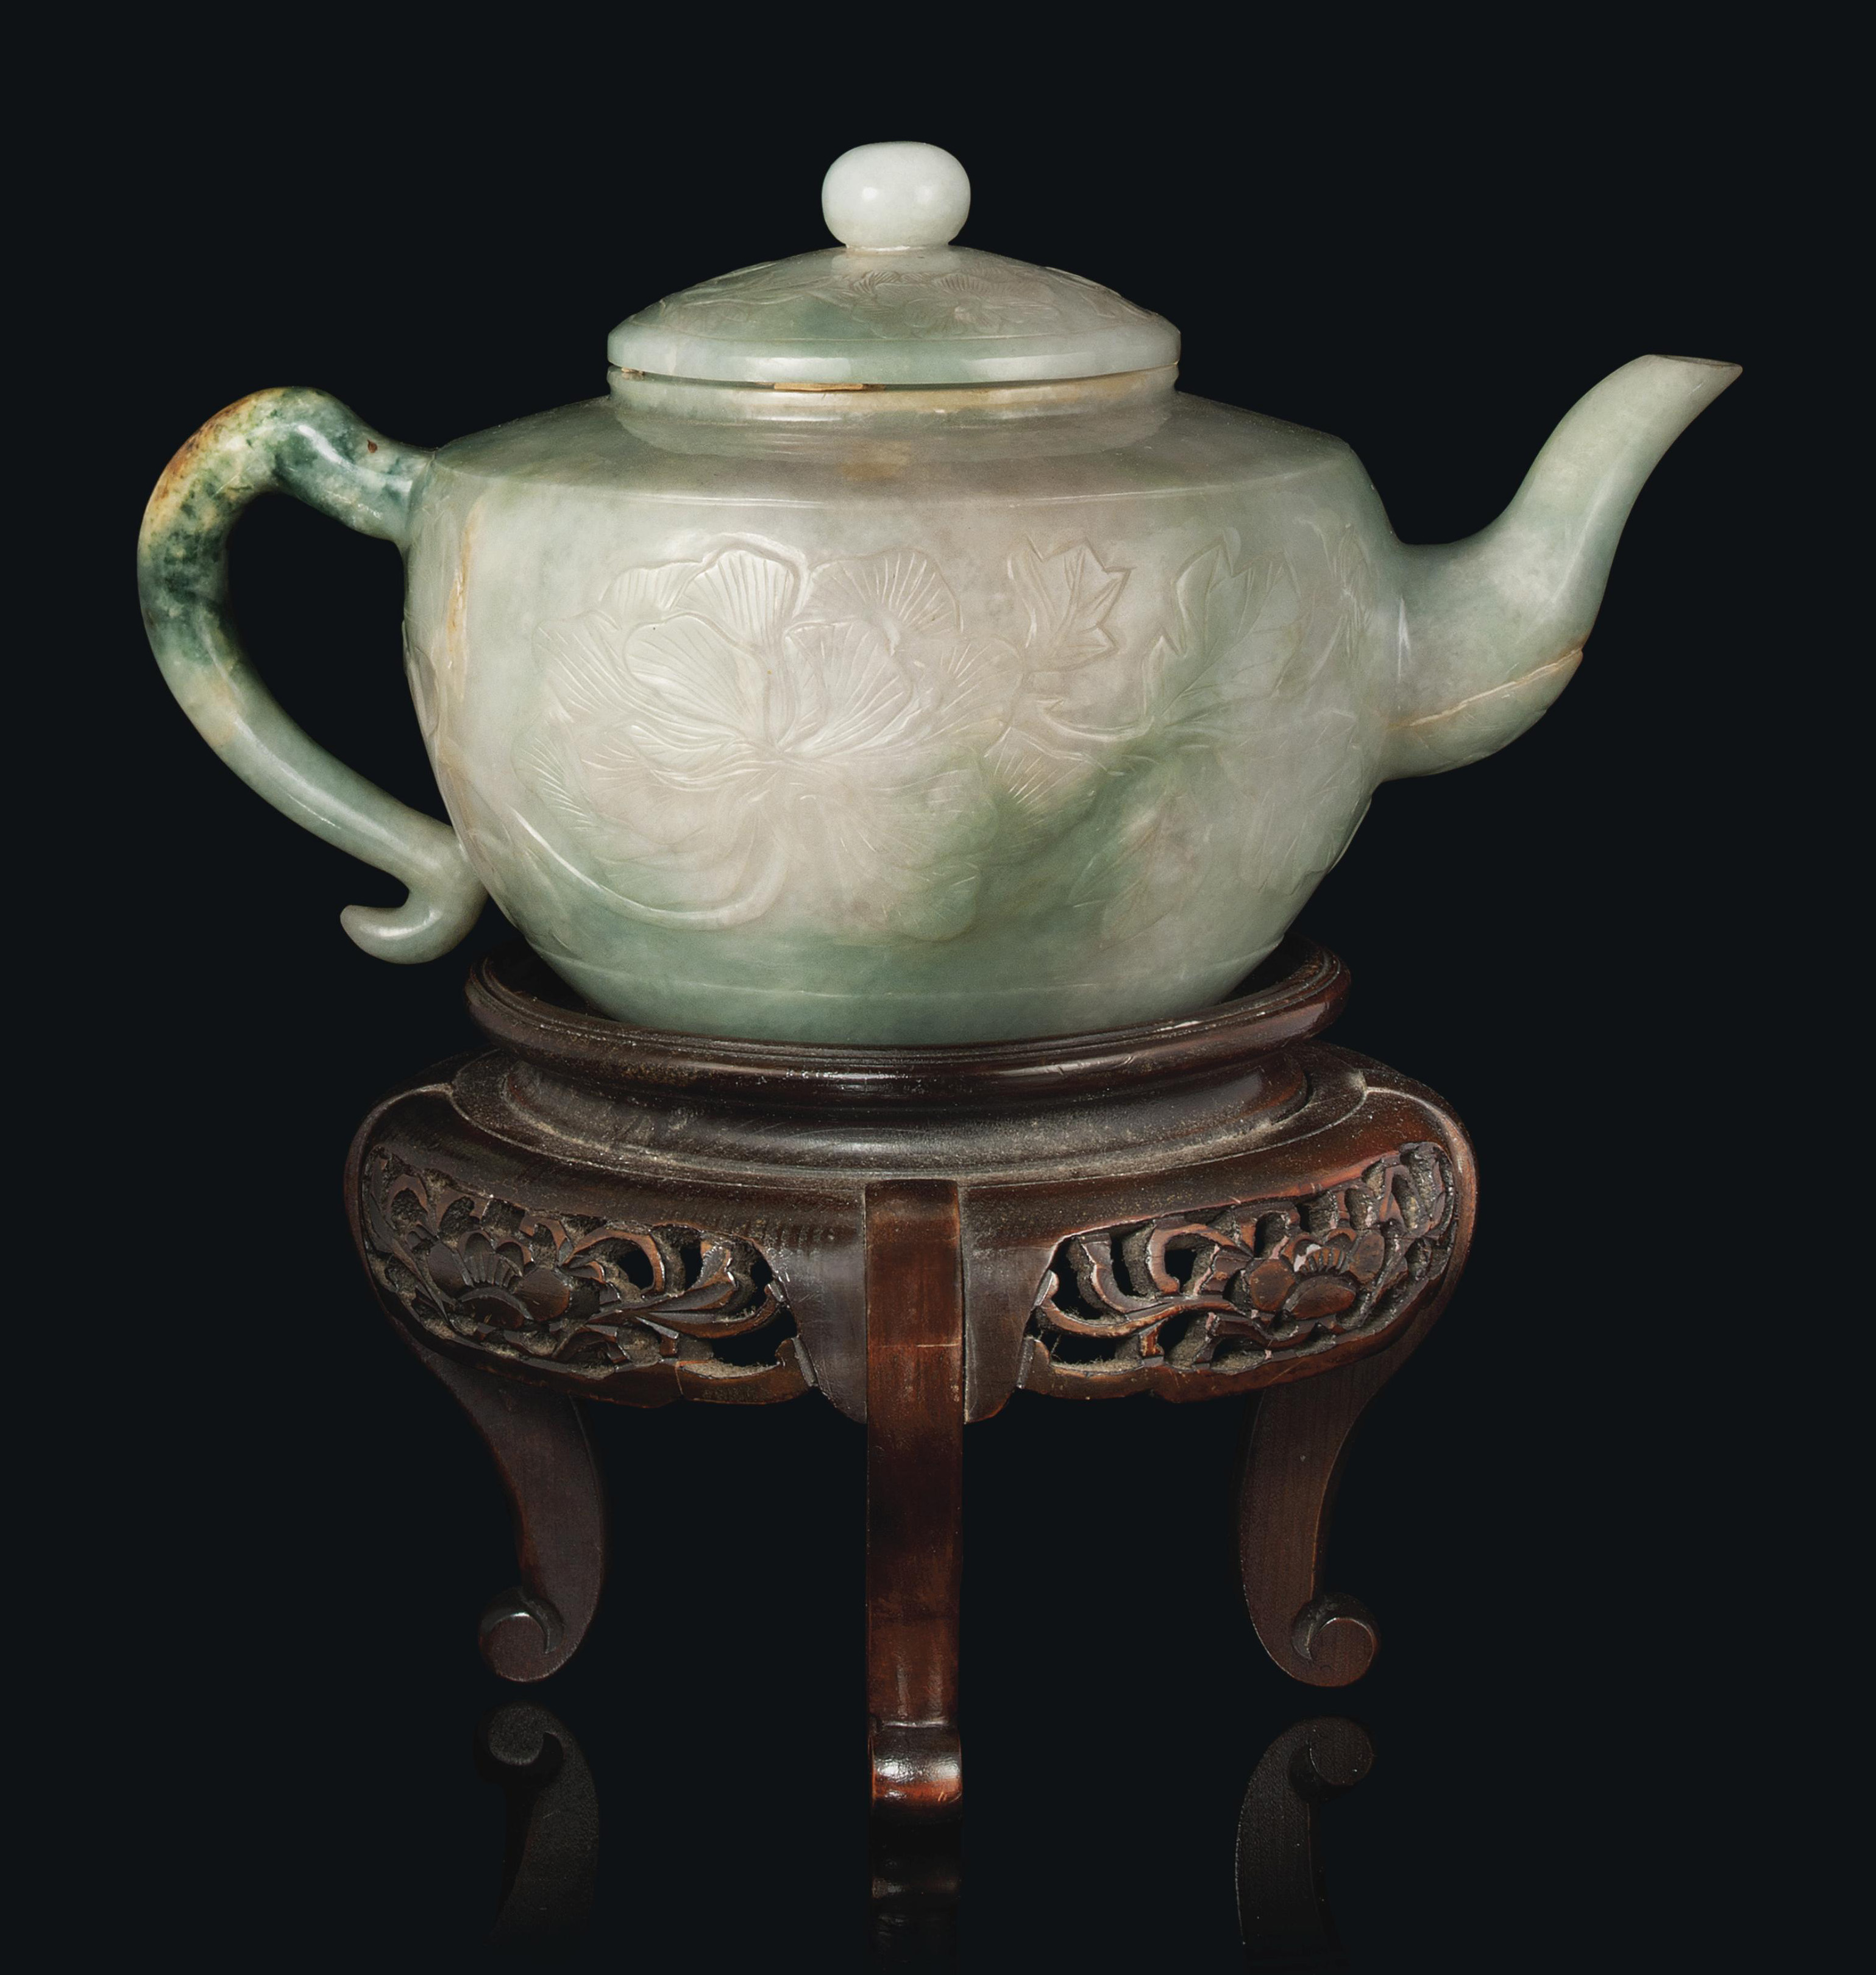 A CHINESE JADEITE TEAPOT AND C